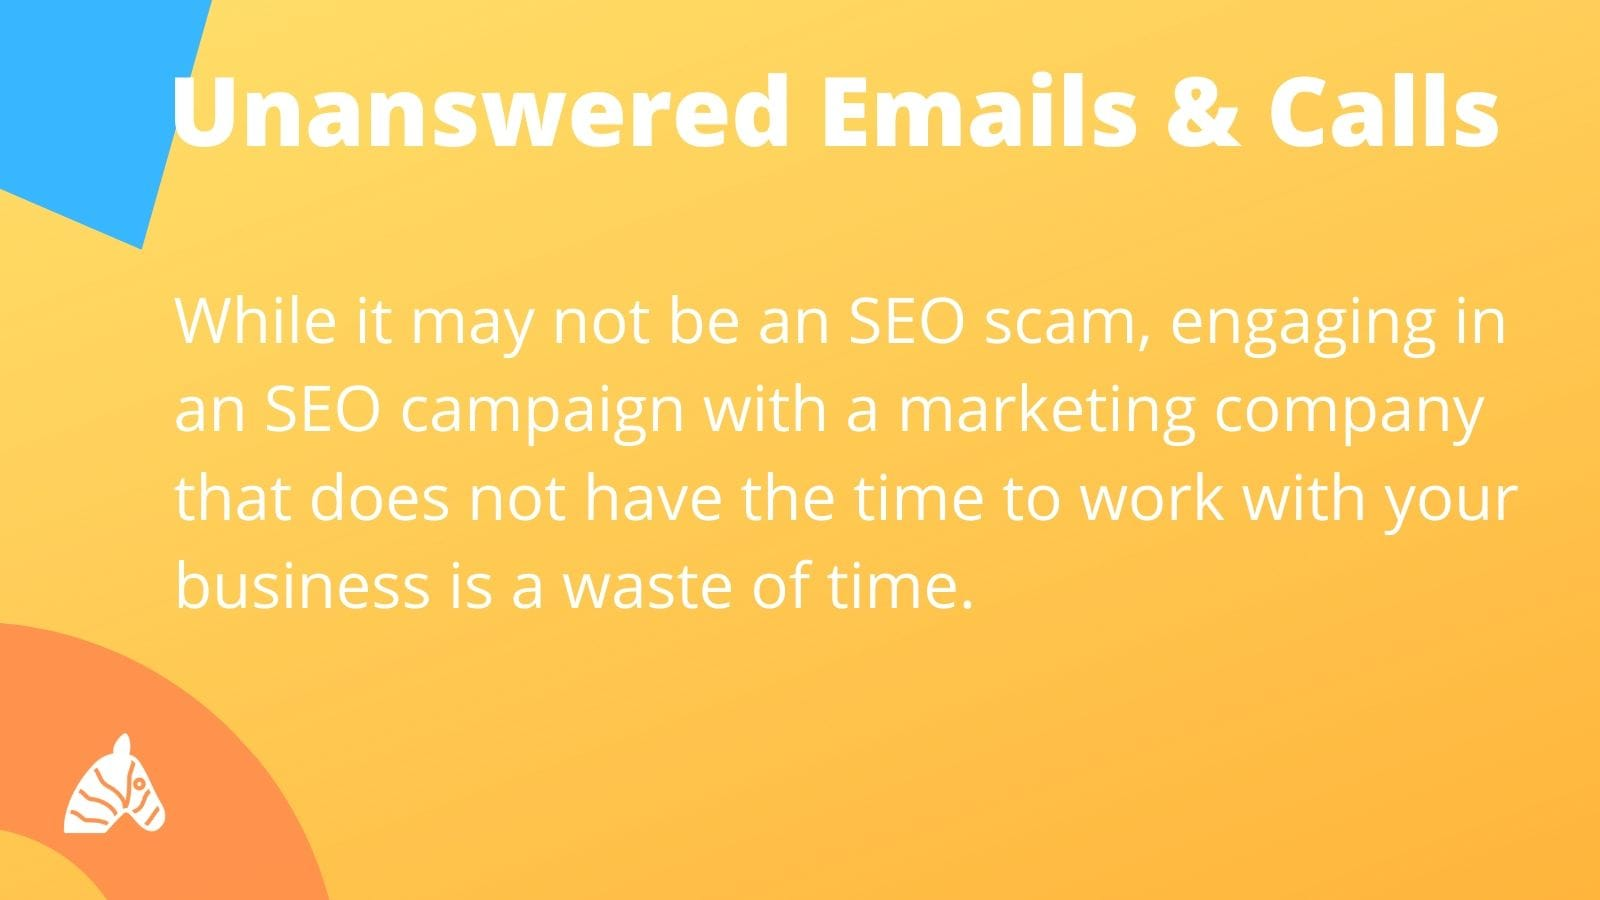 signs of an SEO scam - unanswered emails and calls